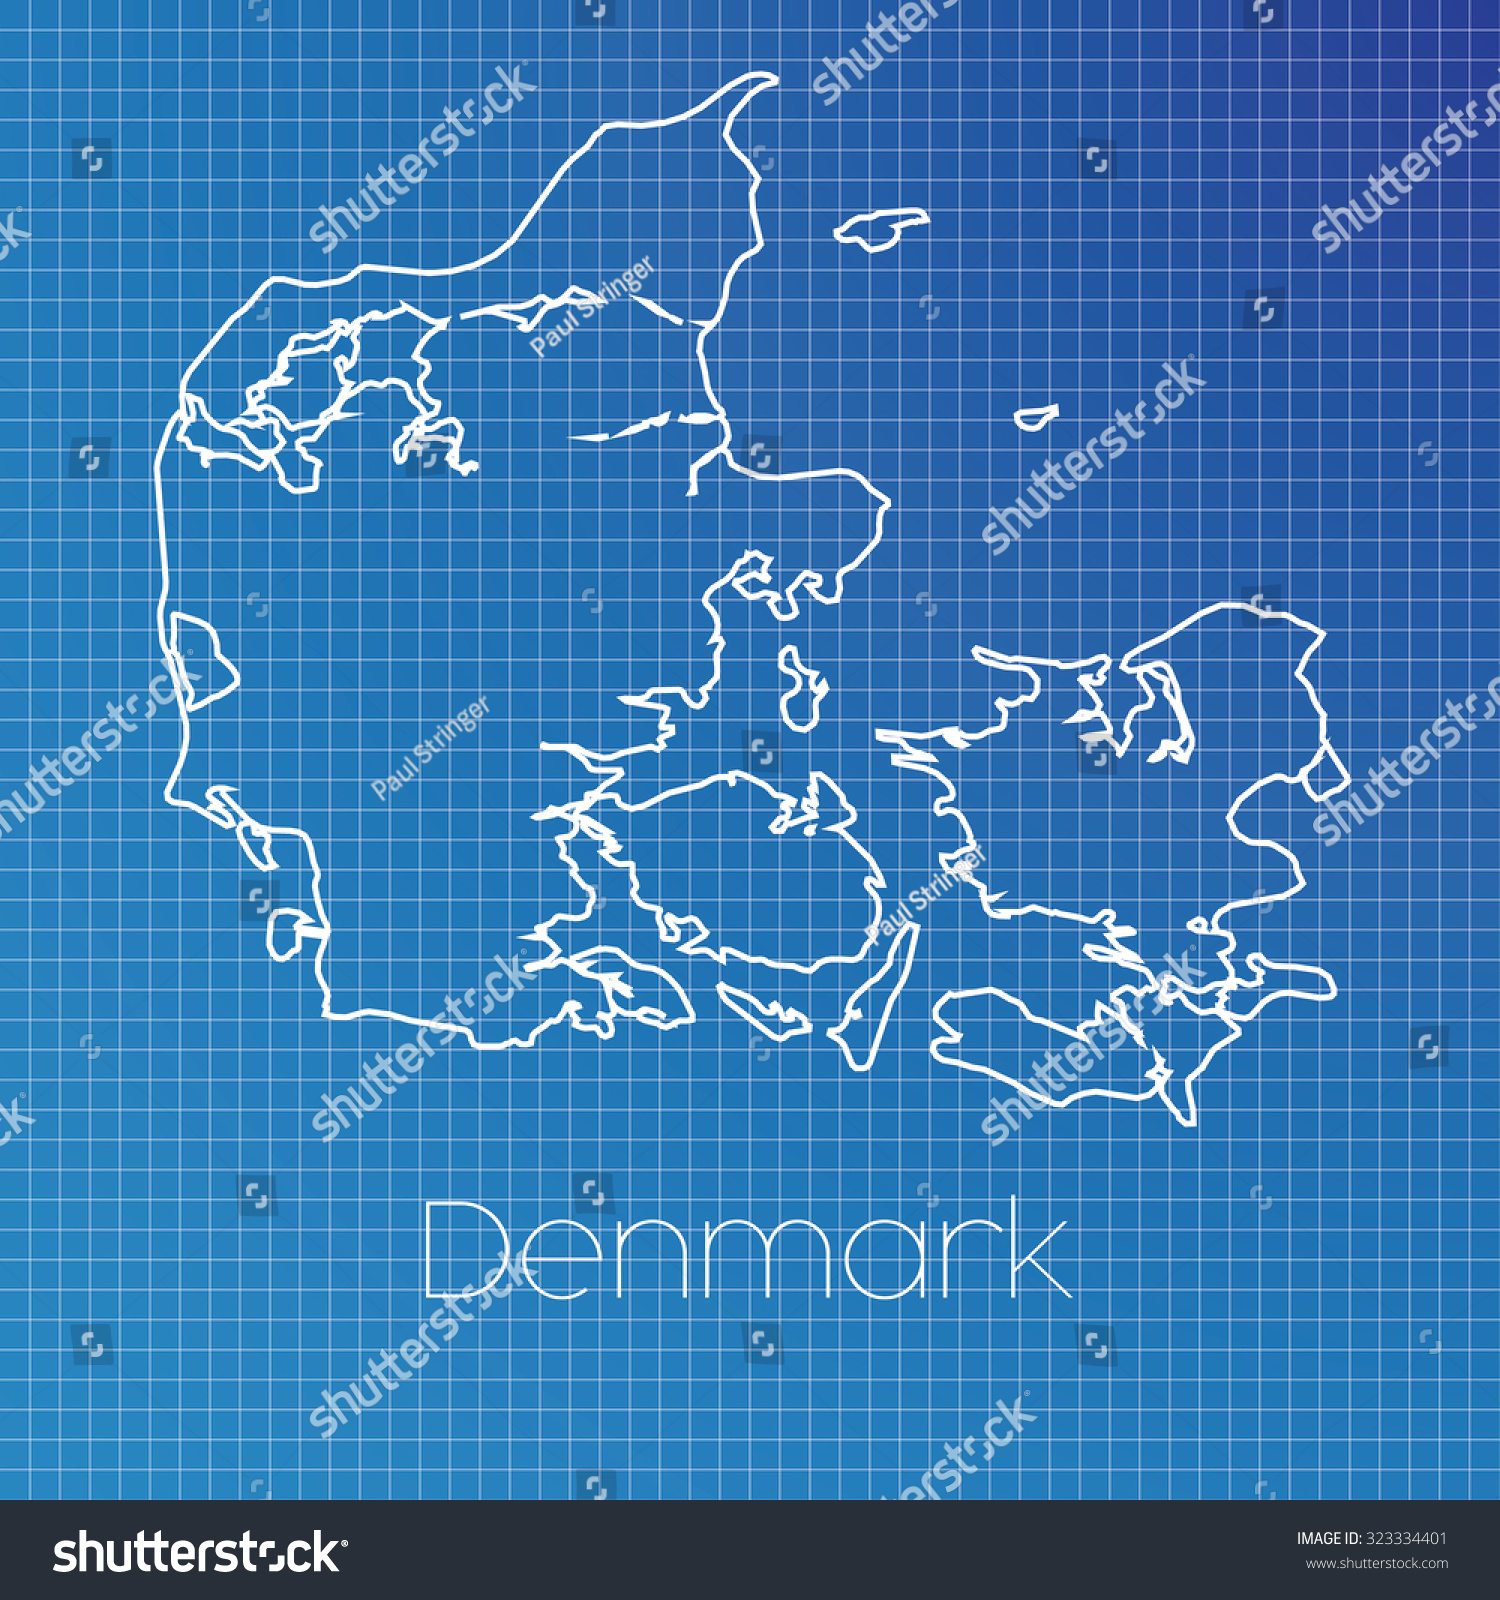 Schematic Outline Country Denmark Stock Illustration 323334401 ...